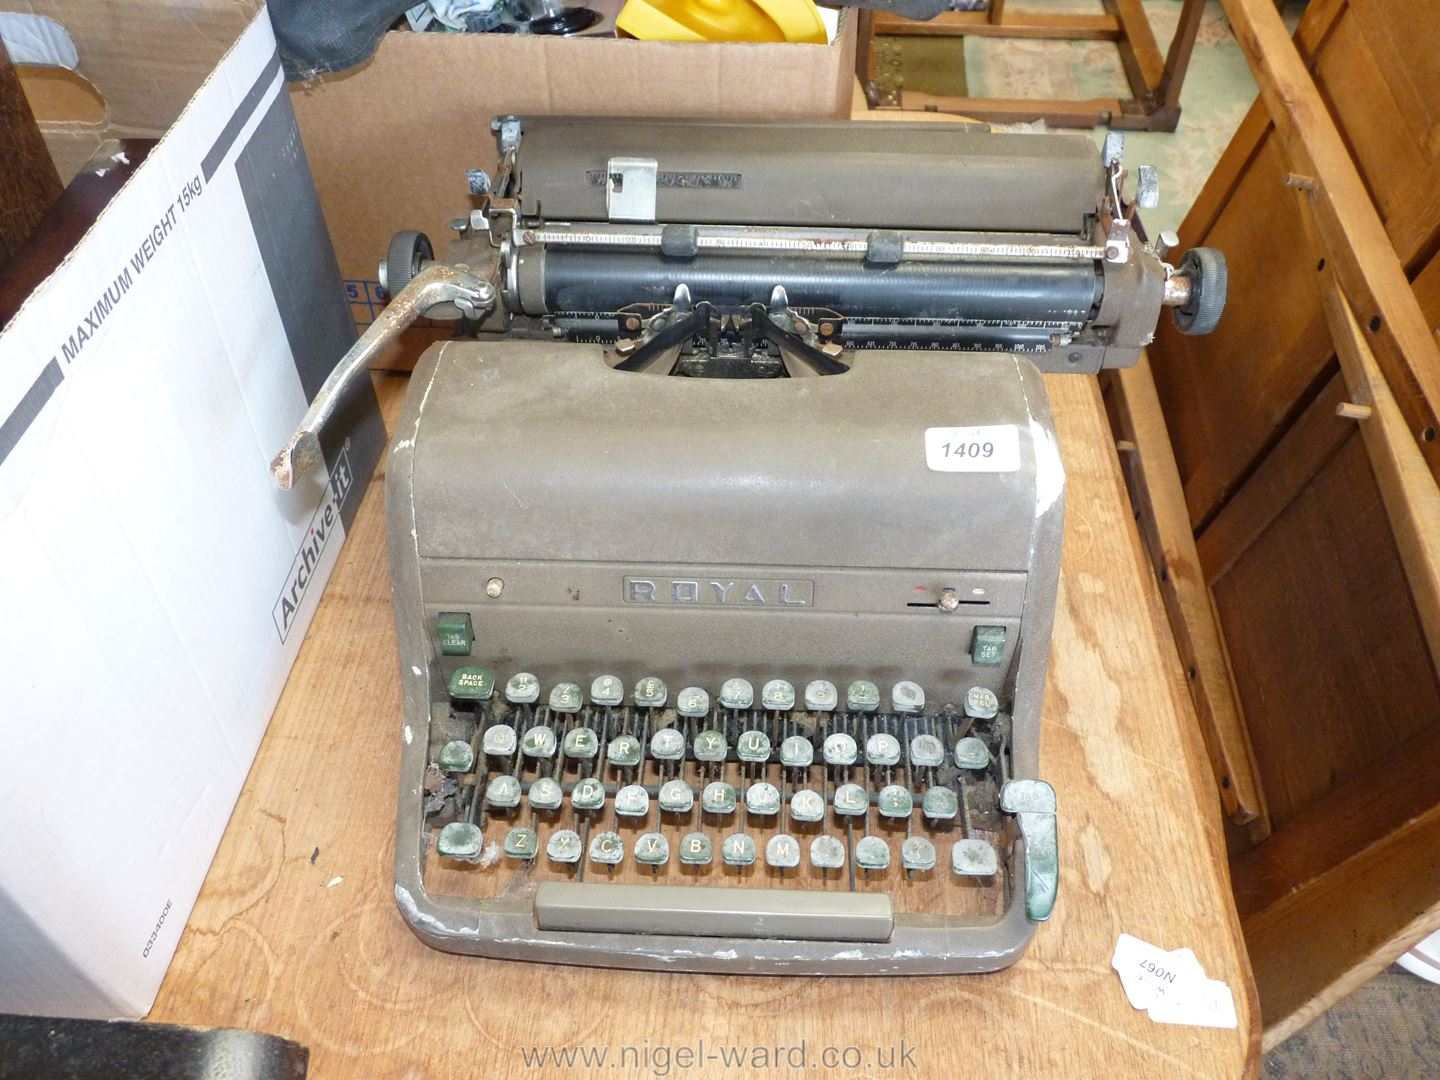 An old Royal typewriter with leatherette cover.